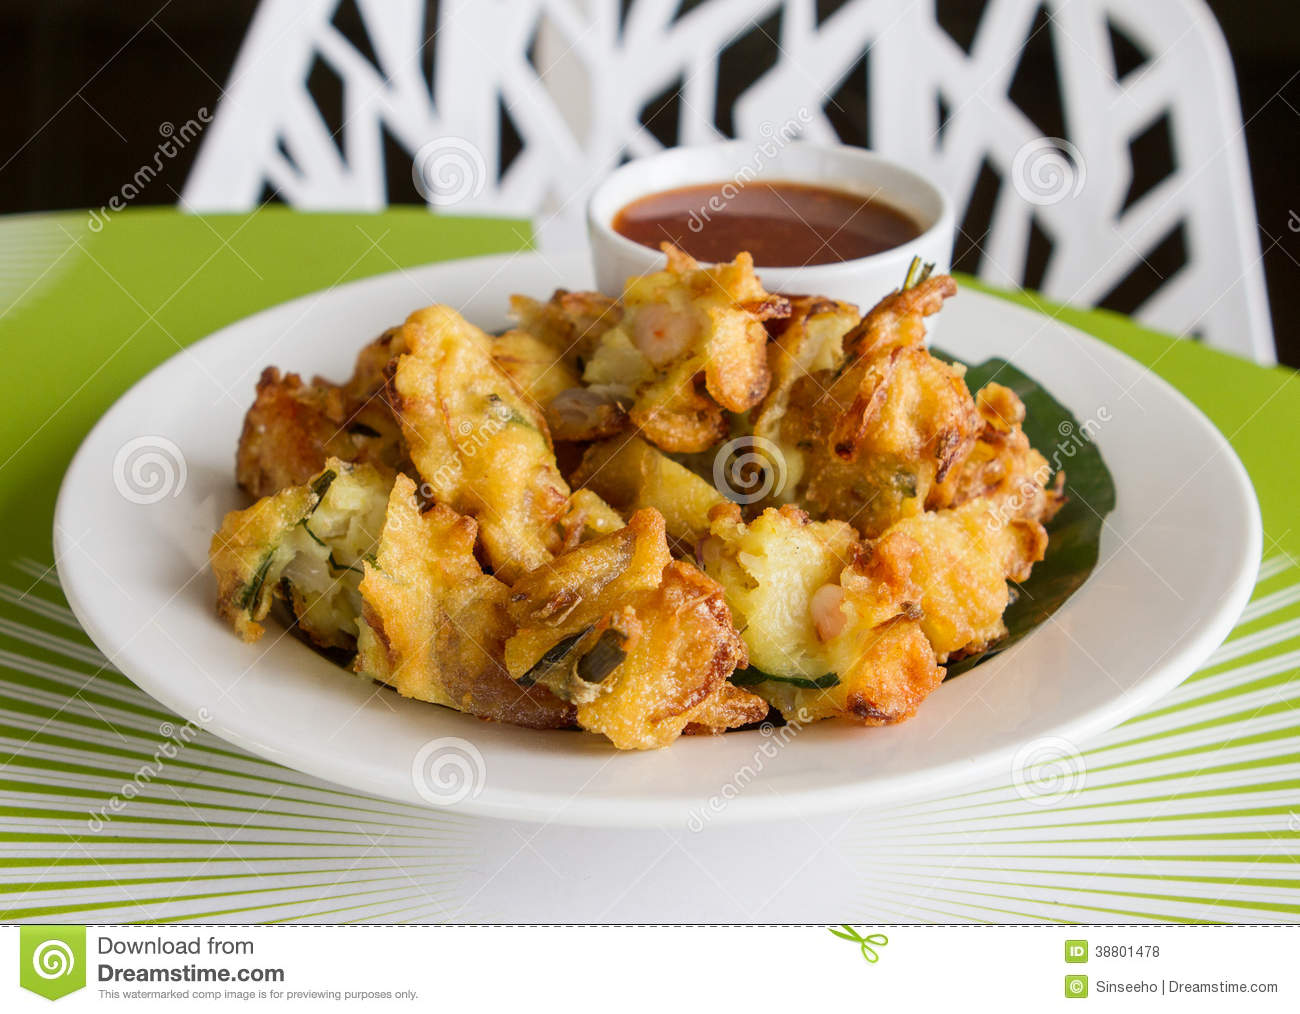 Cucur Udang Prawn Fritters Stock Photo - Image: 38801478